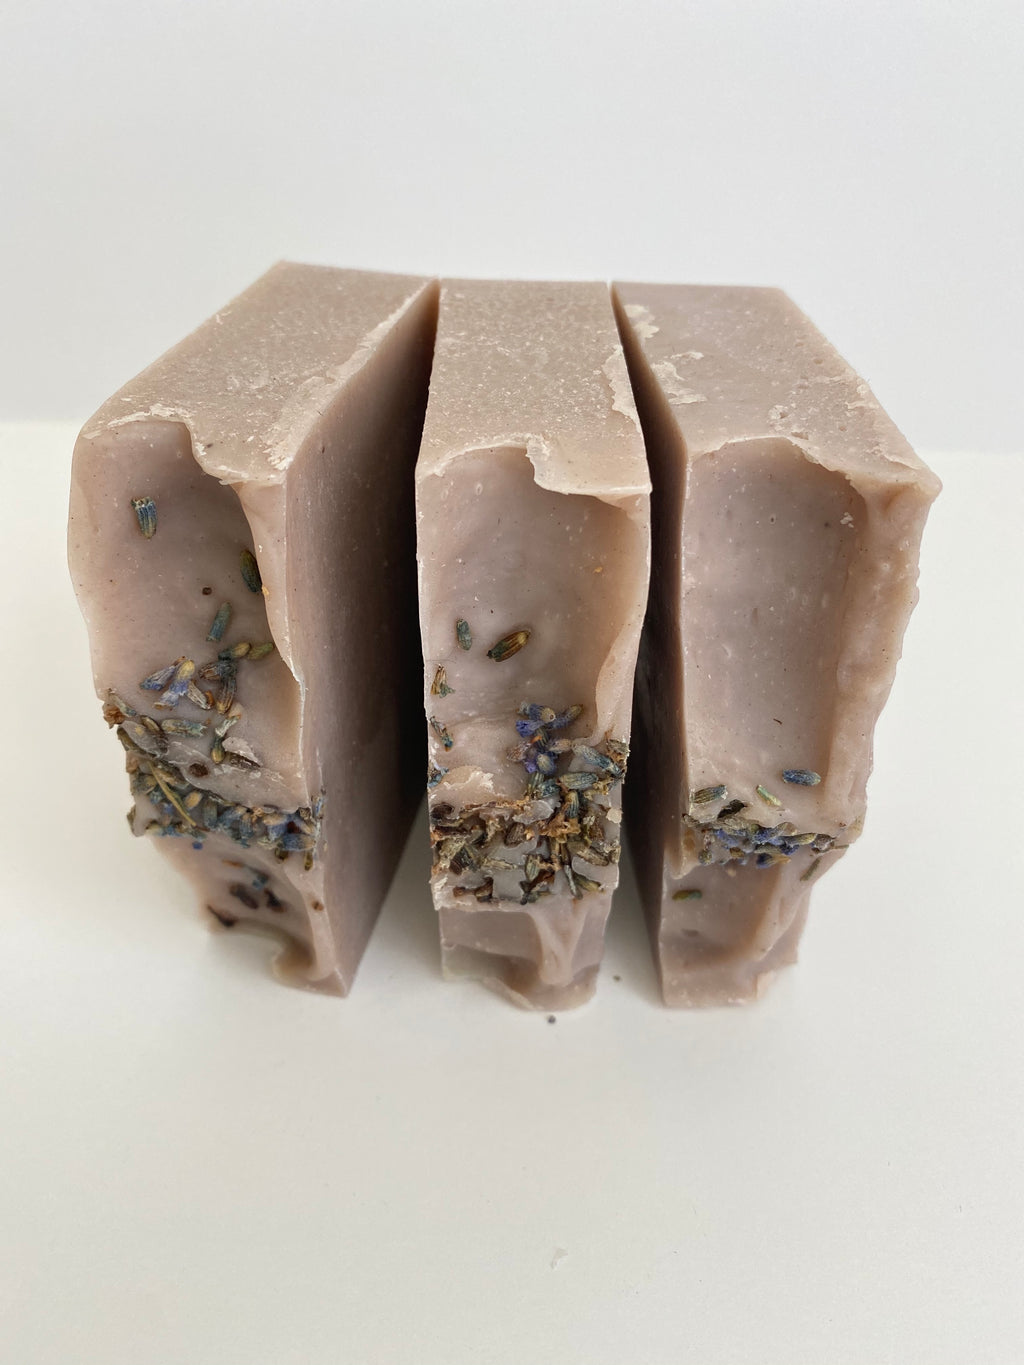 Patchouli and Lavender w/ Lavender Flowers Essential Oil Soap  | Vegan